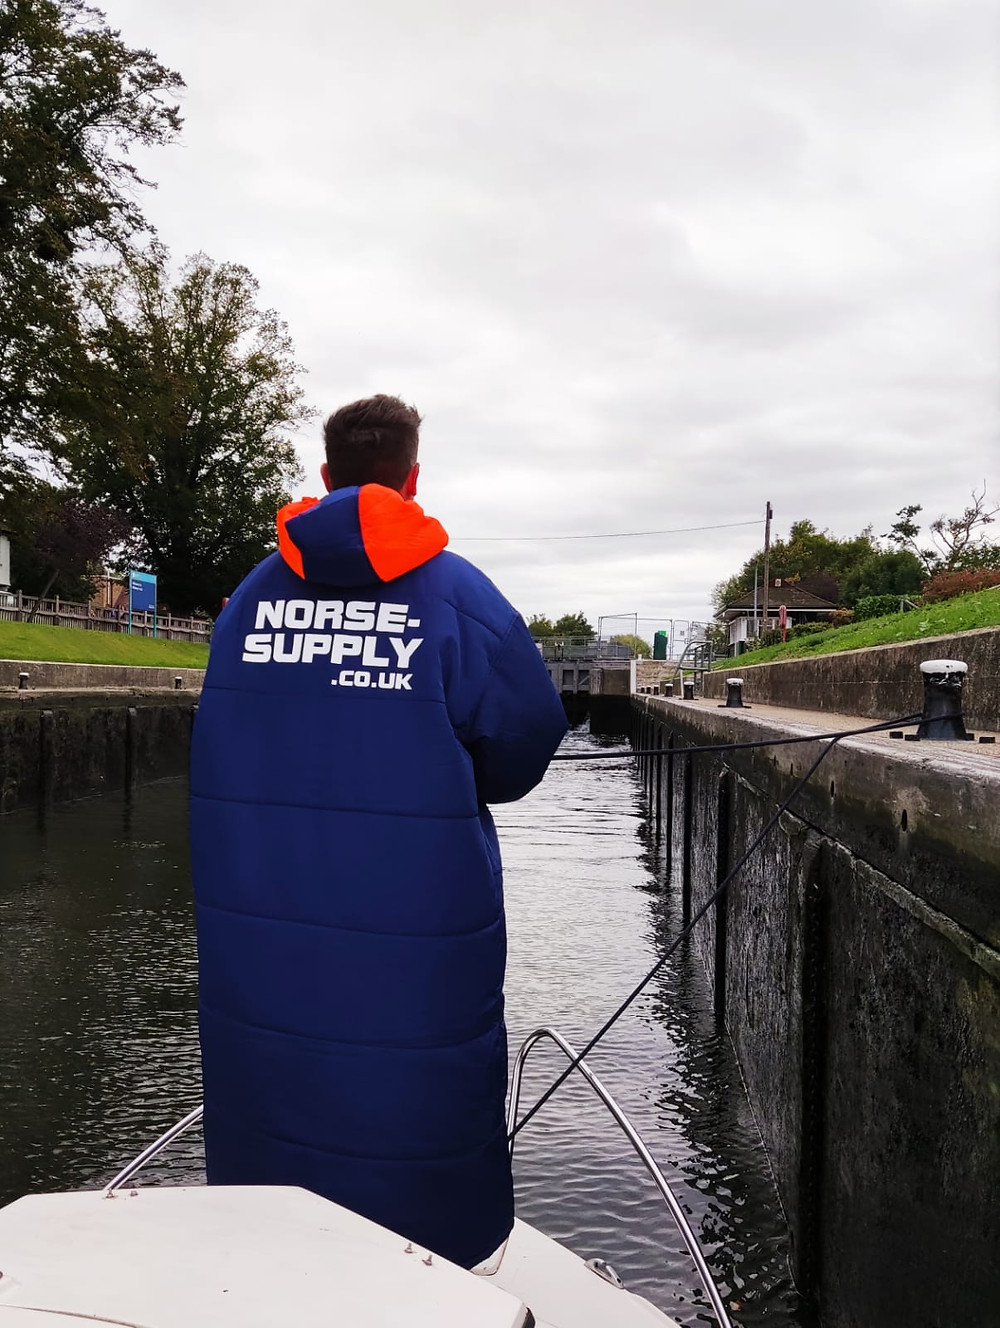 Boat owner in a lock during autumn in a Sittingsuit